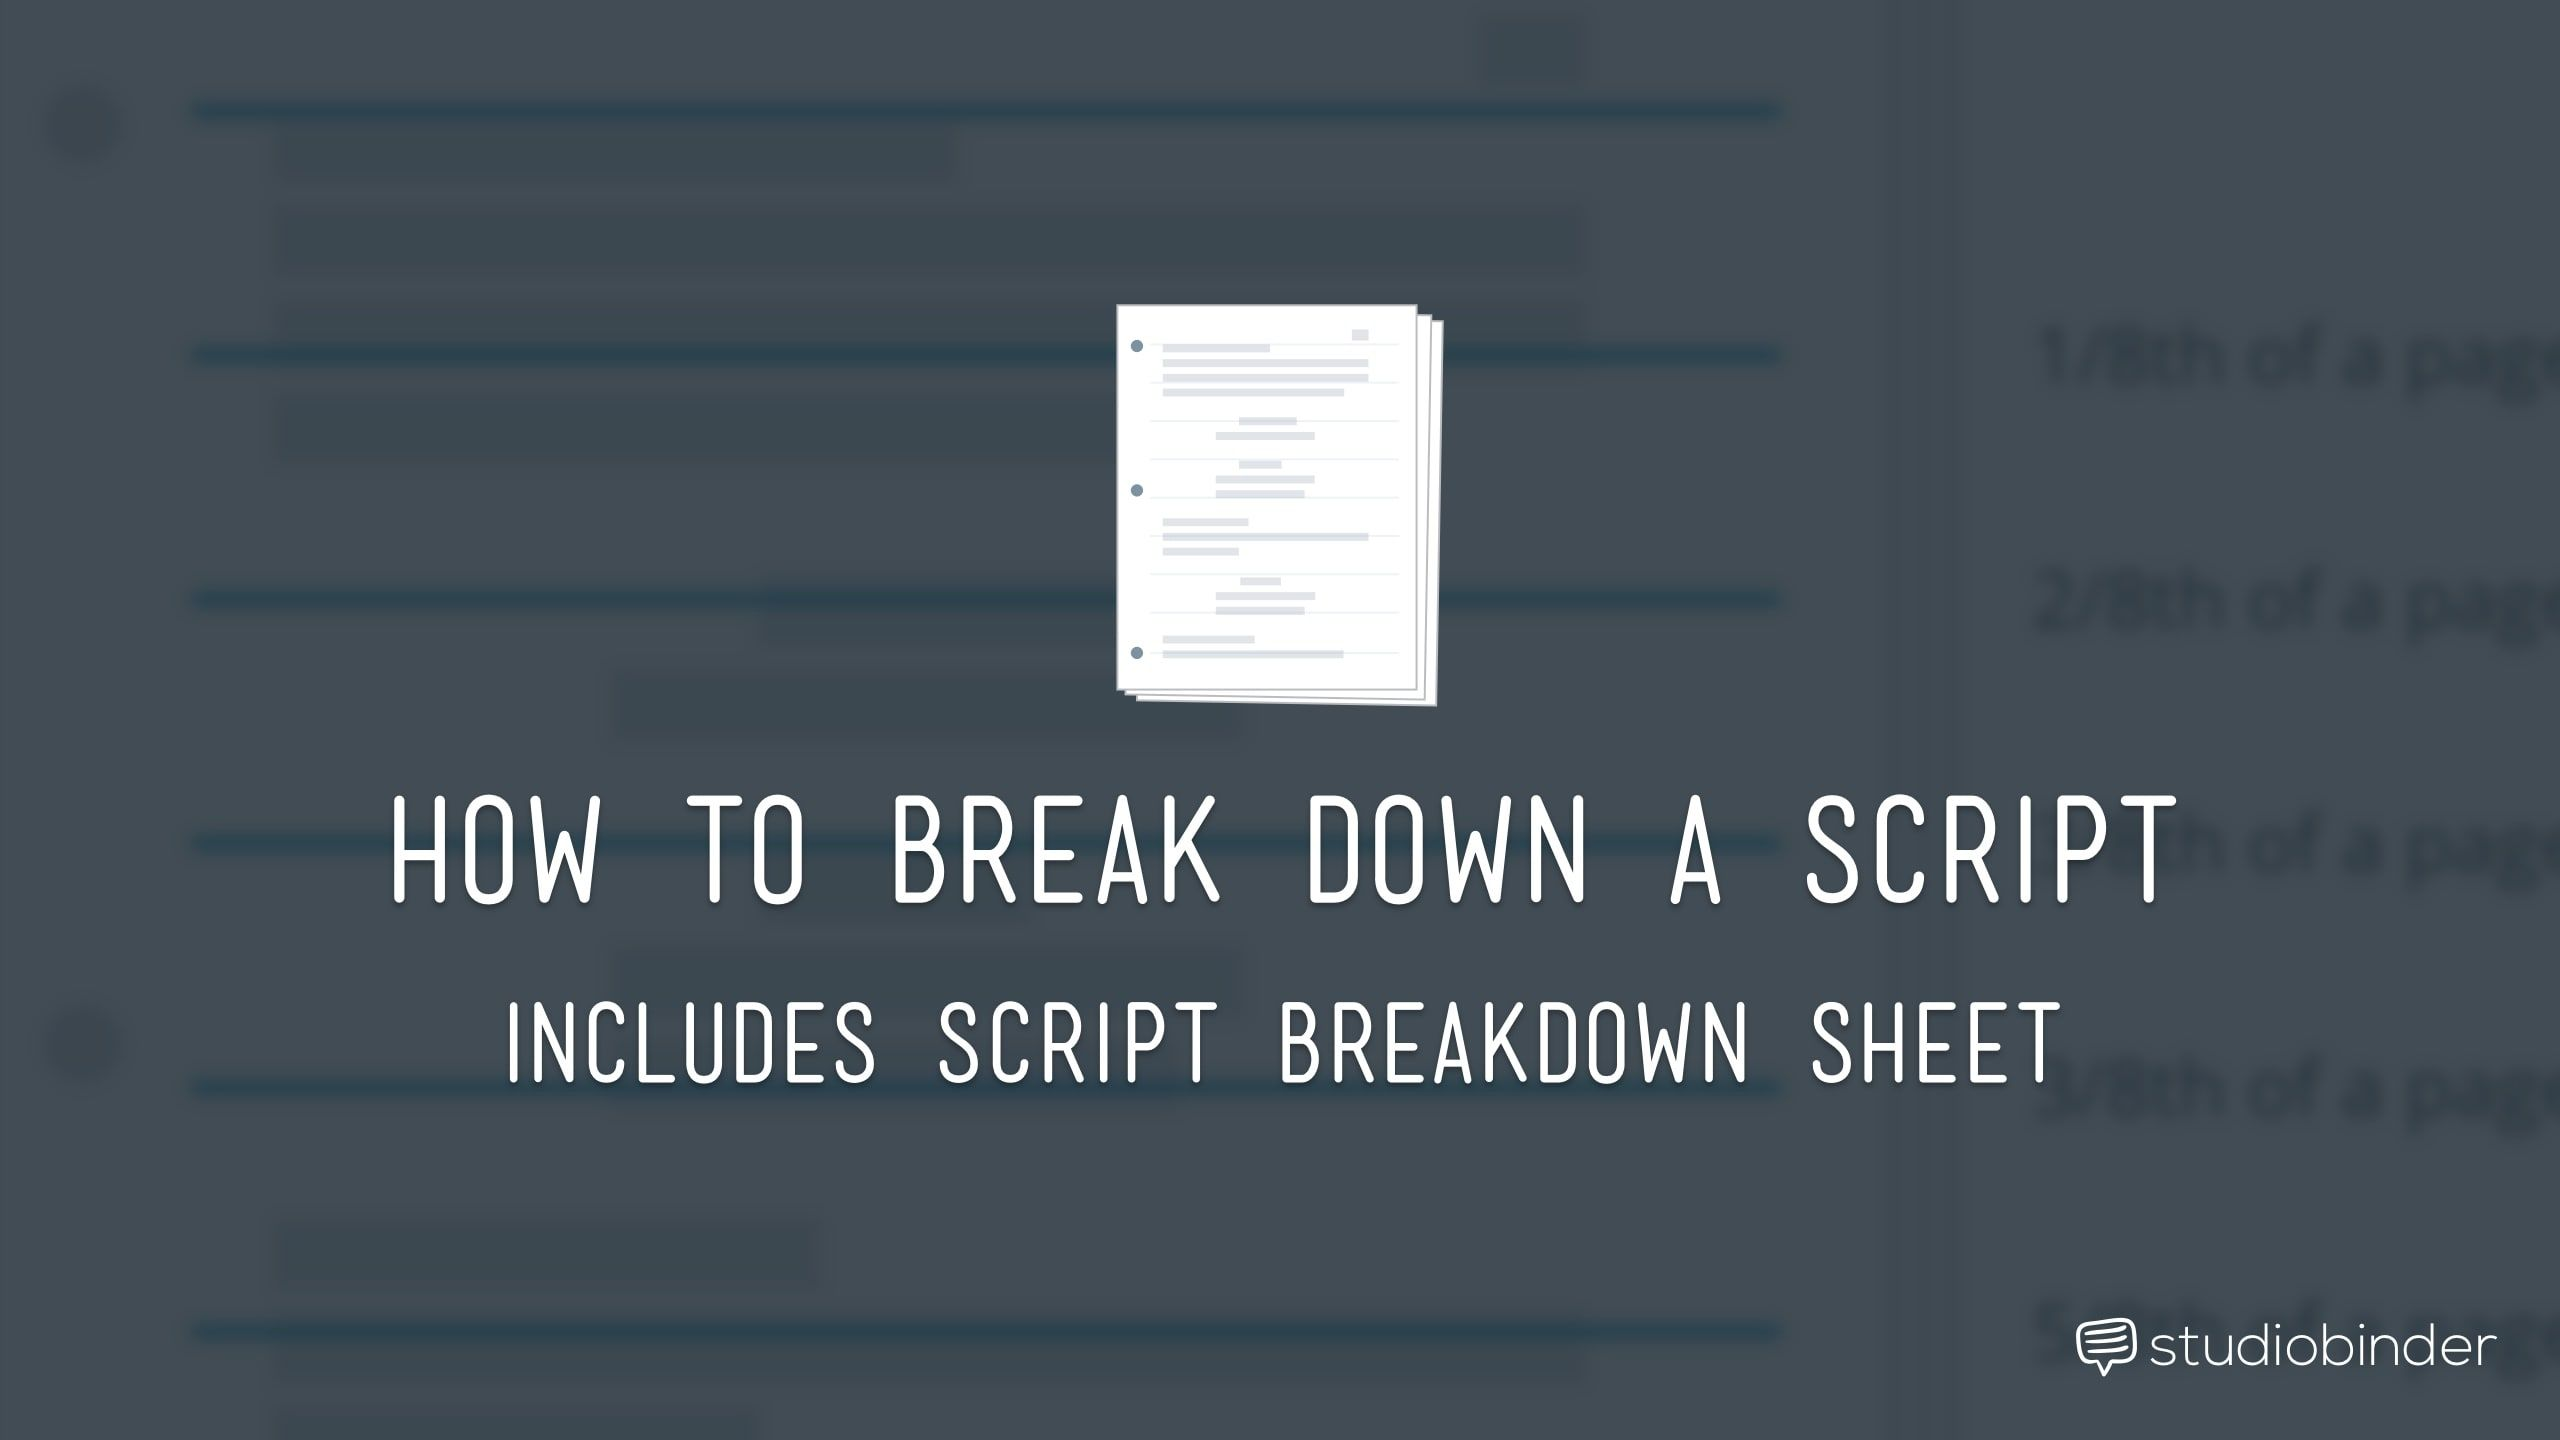 Follow these 6 easy steps to effectively break down a script from ...